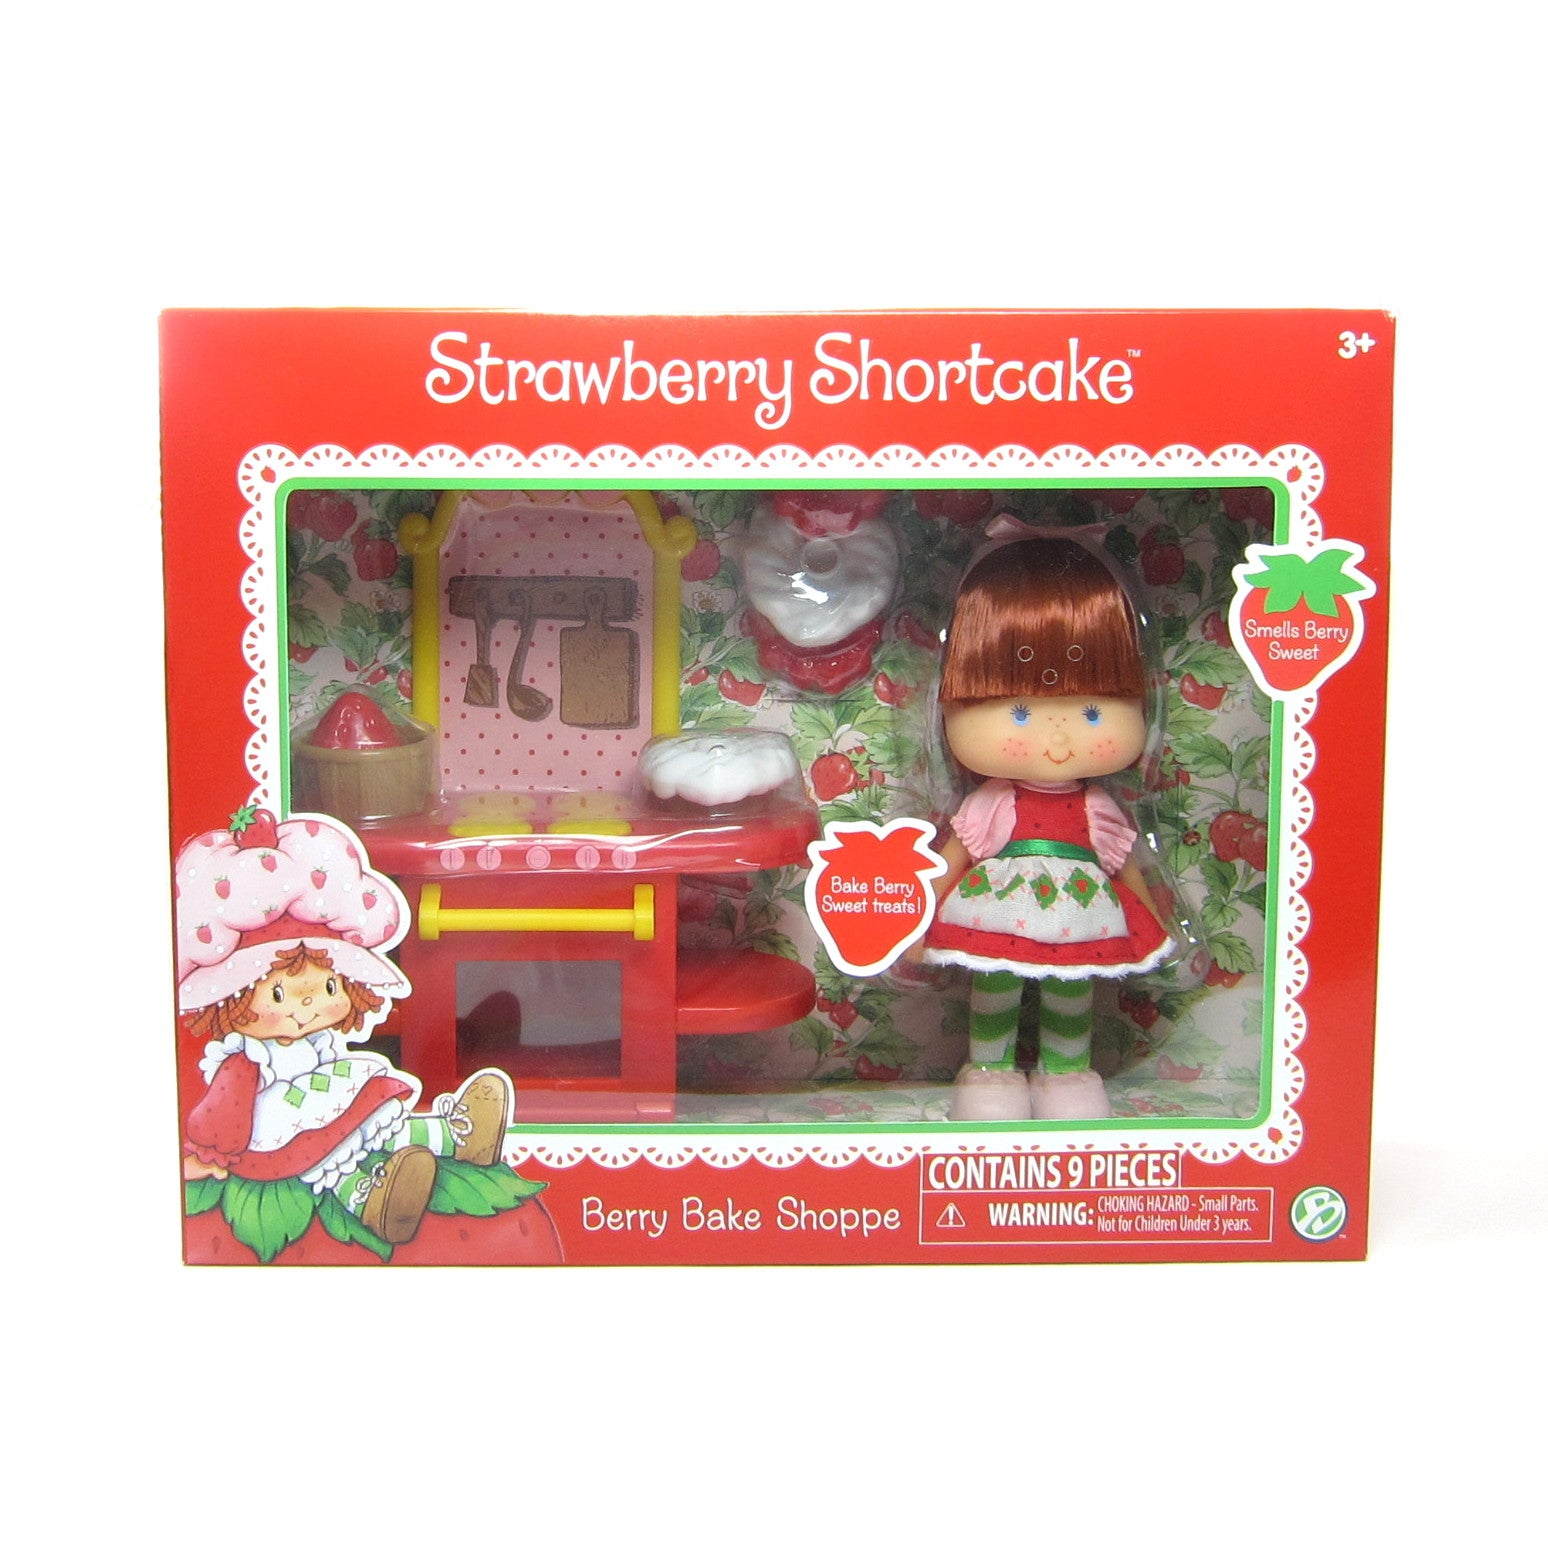 Berry Bake Shoppe Strawberry Shortcake classic reissue playset